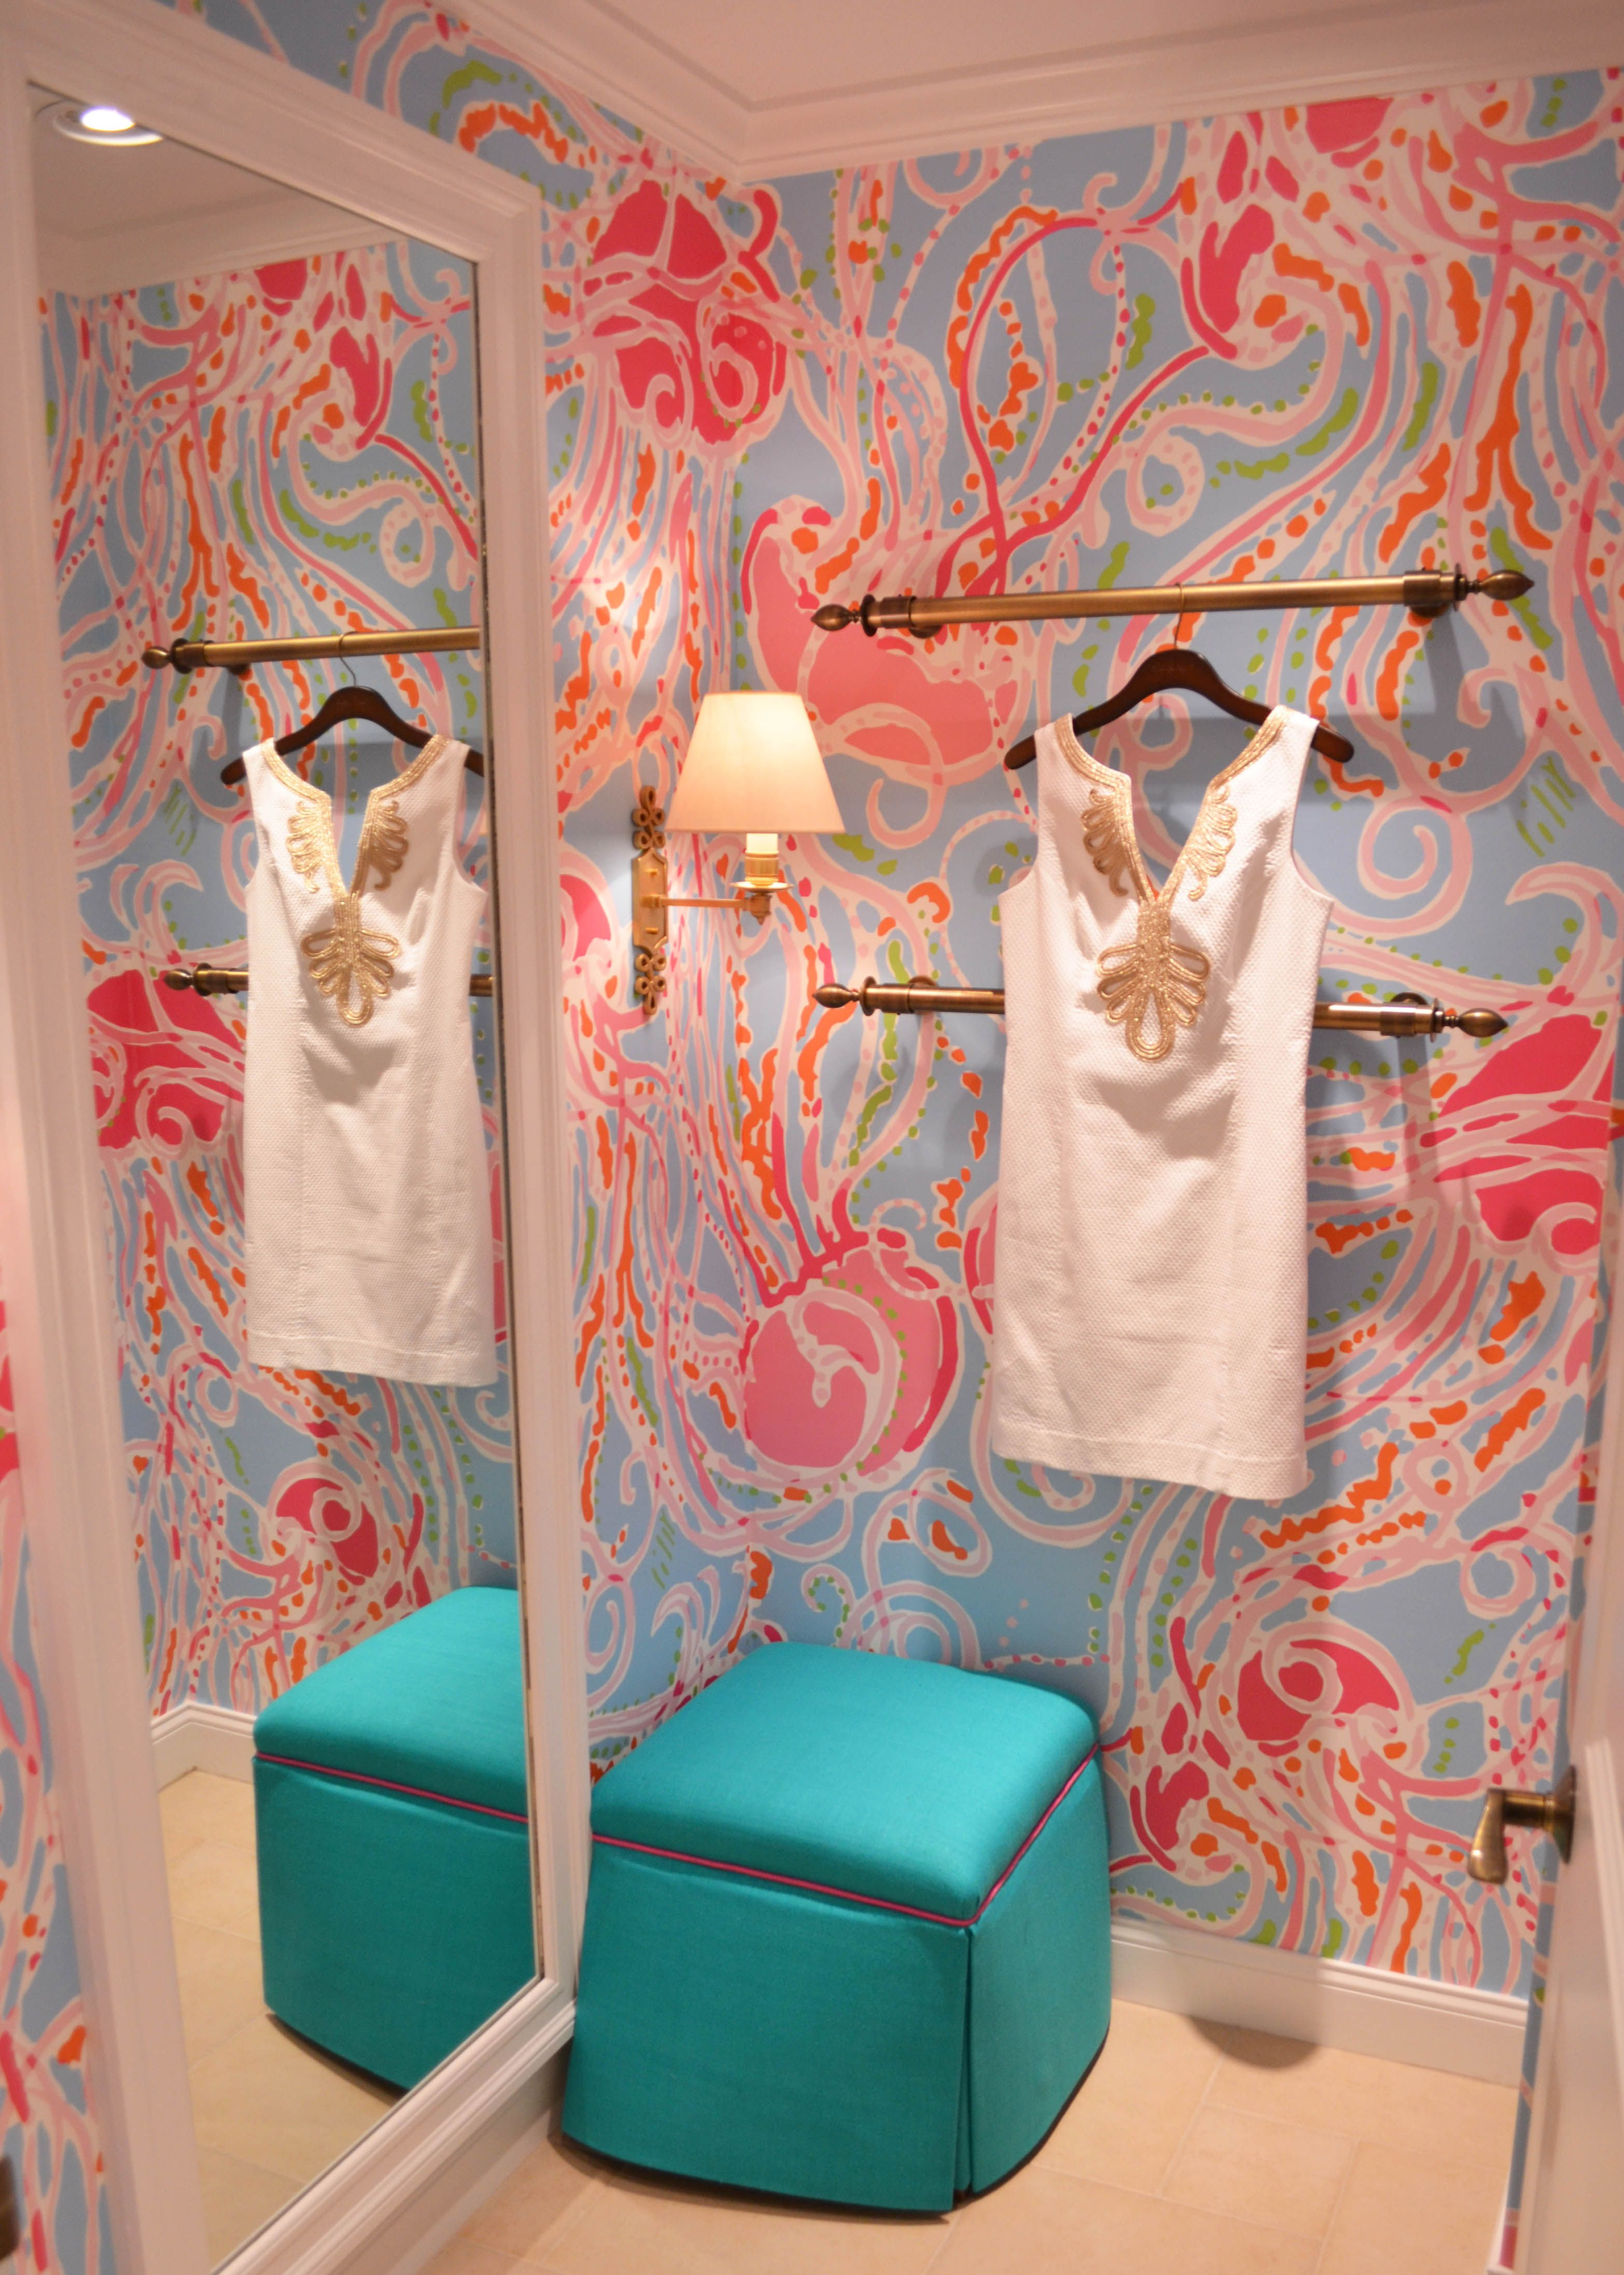 Explore Bathroom Mural, Pretty Wallpapers, And More! Lilly Pulitzer ...